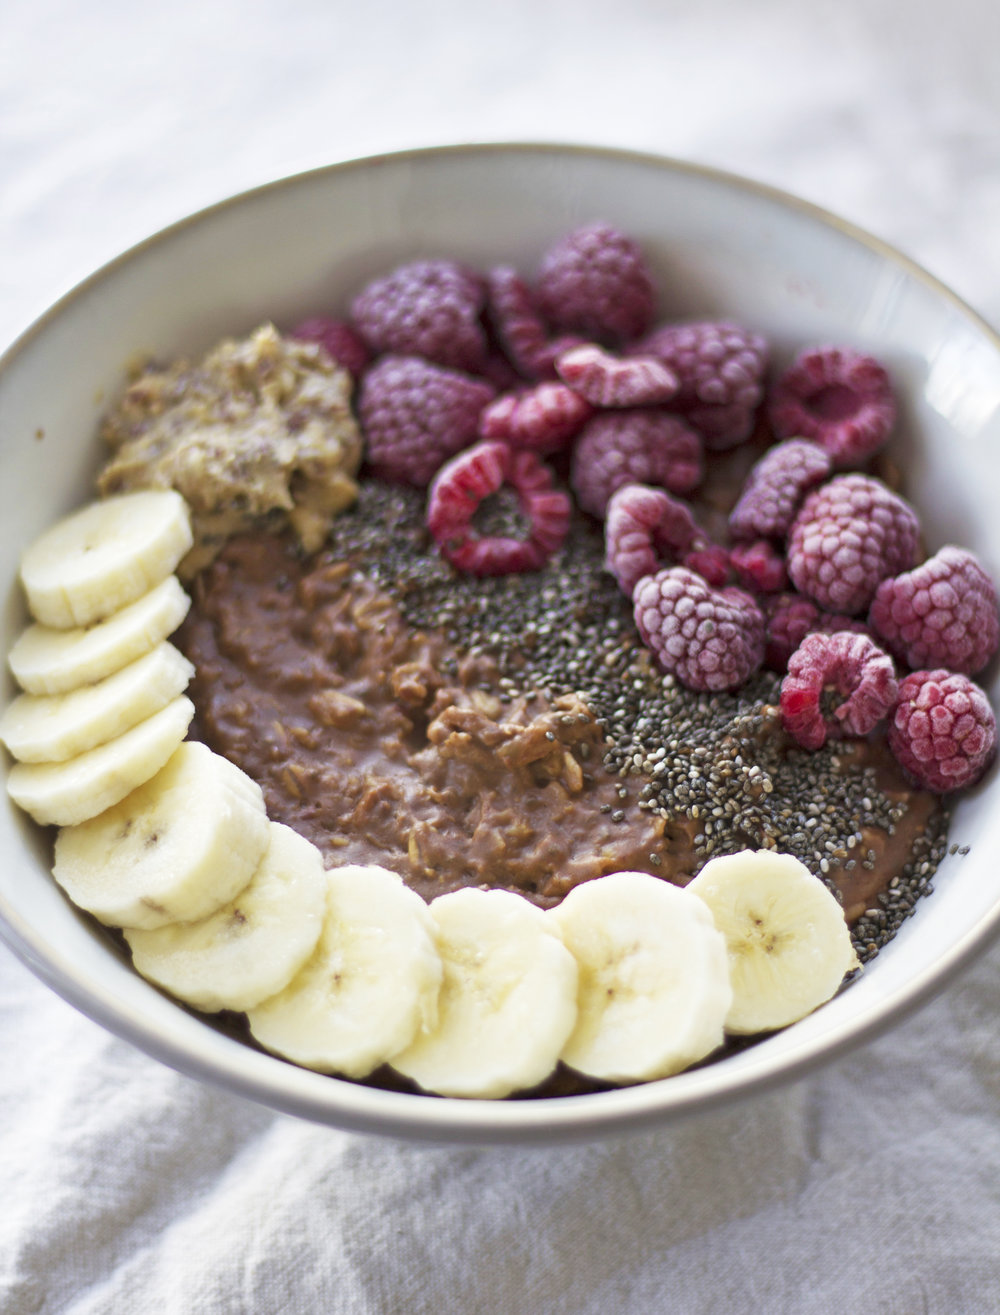 Chocolate, peanut butter and fruit filled oatmeal  - prep time 10 mins     total time 30 mins    serves 2